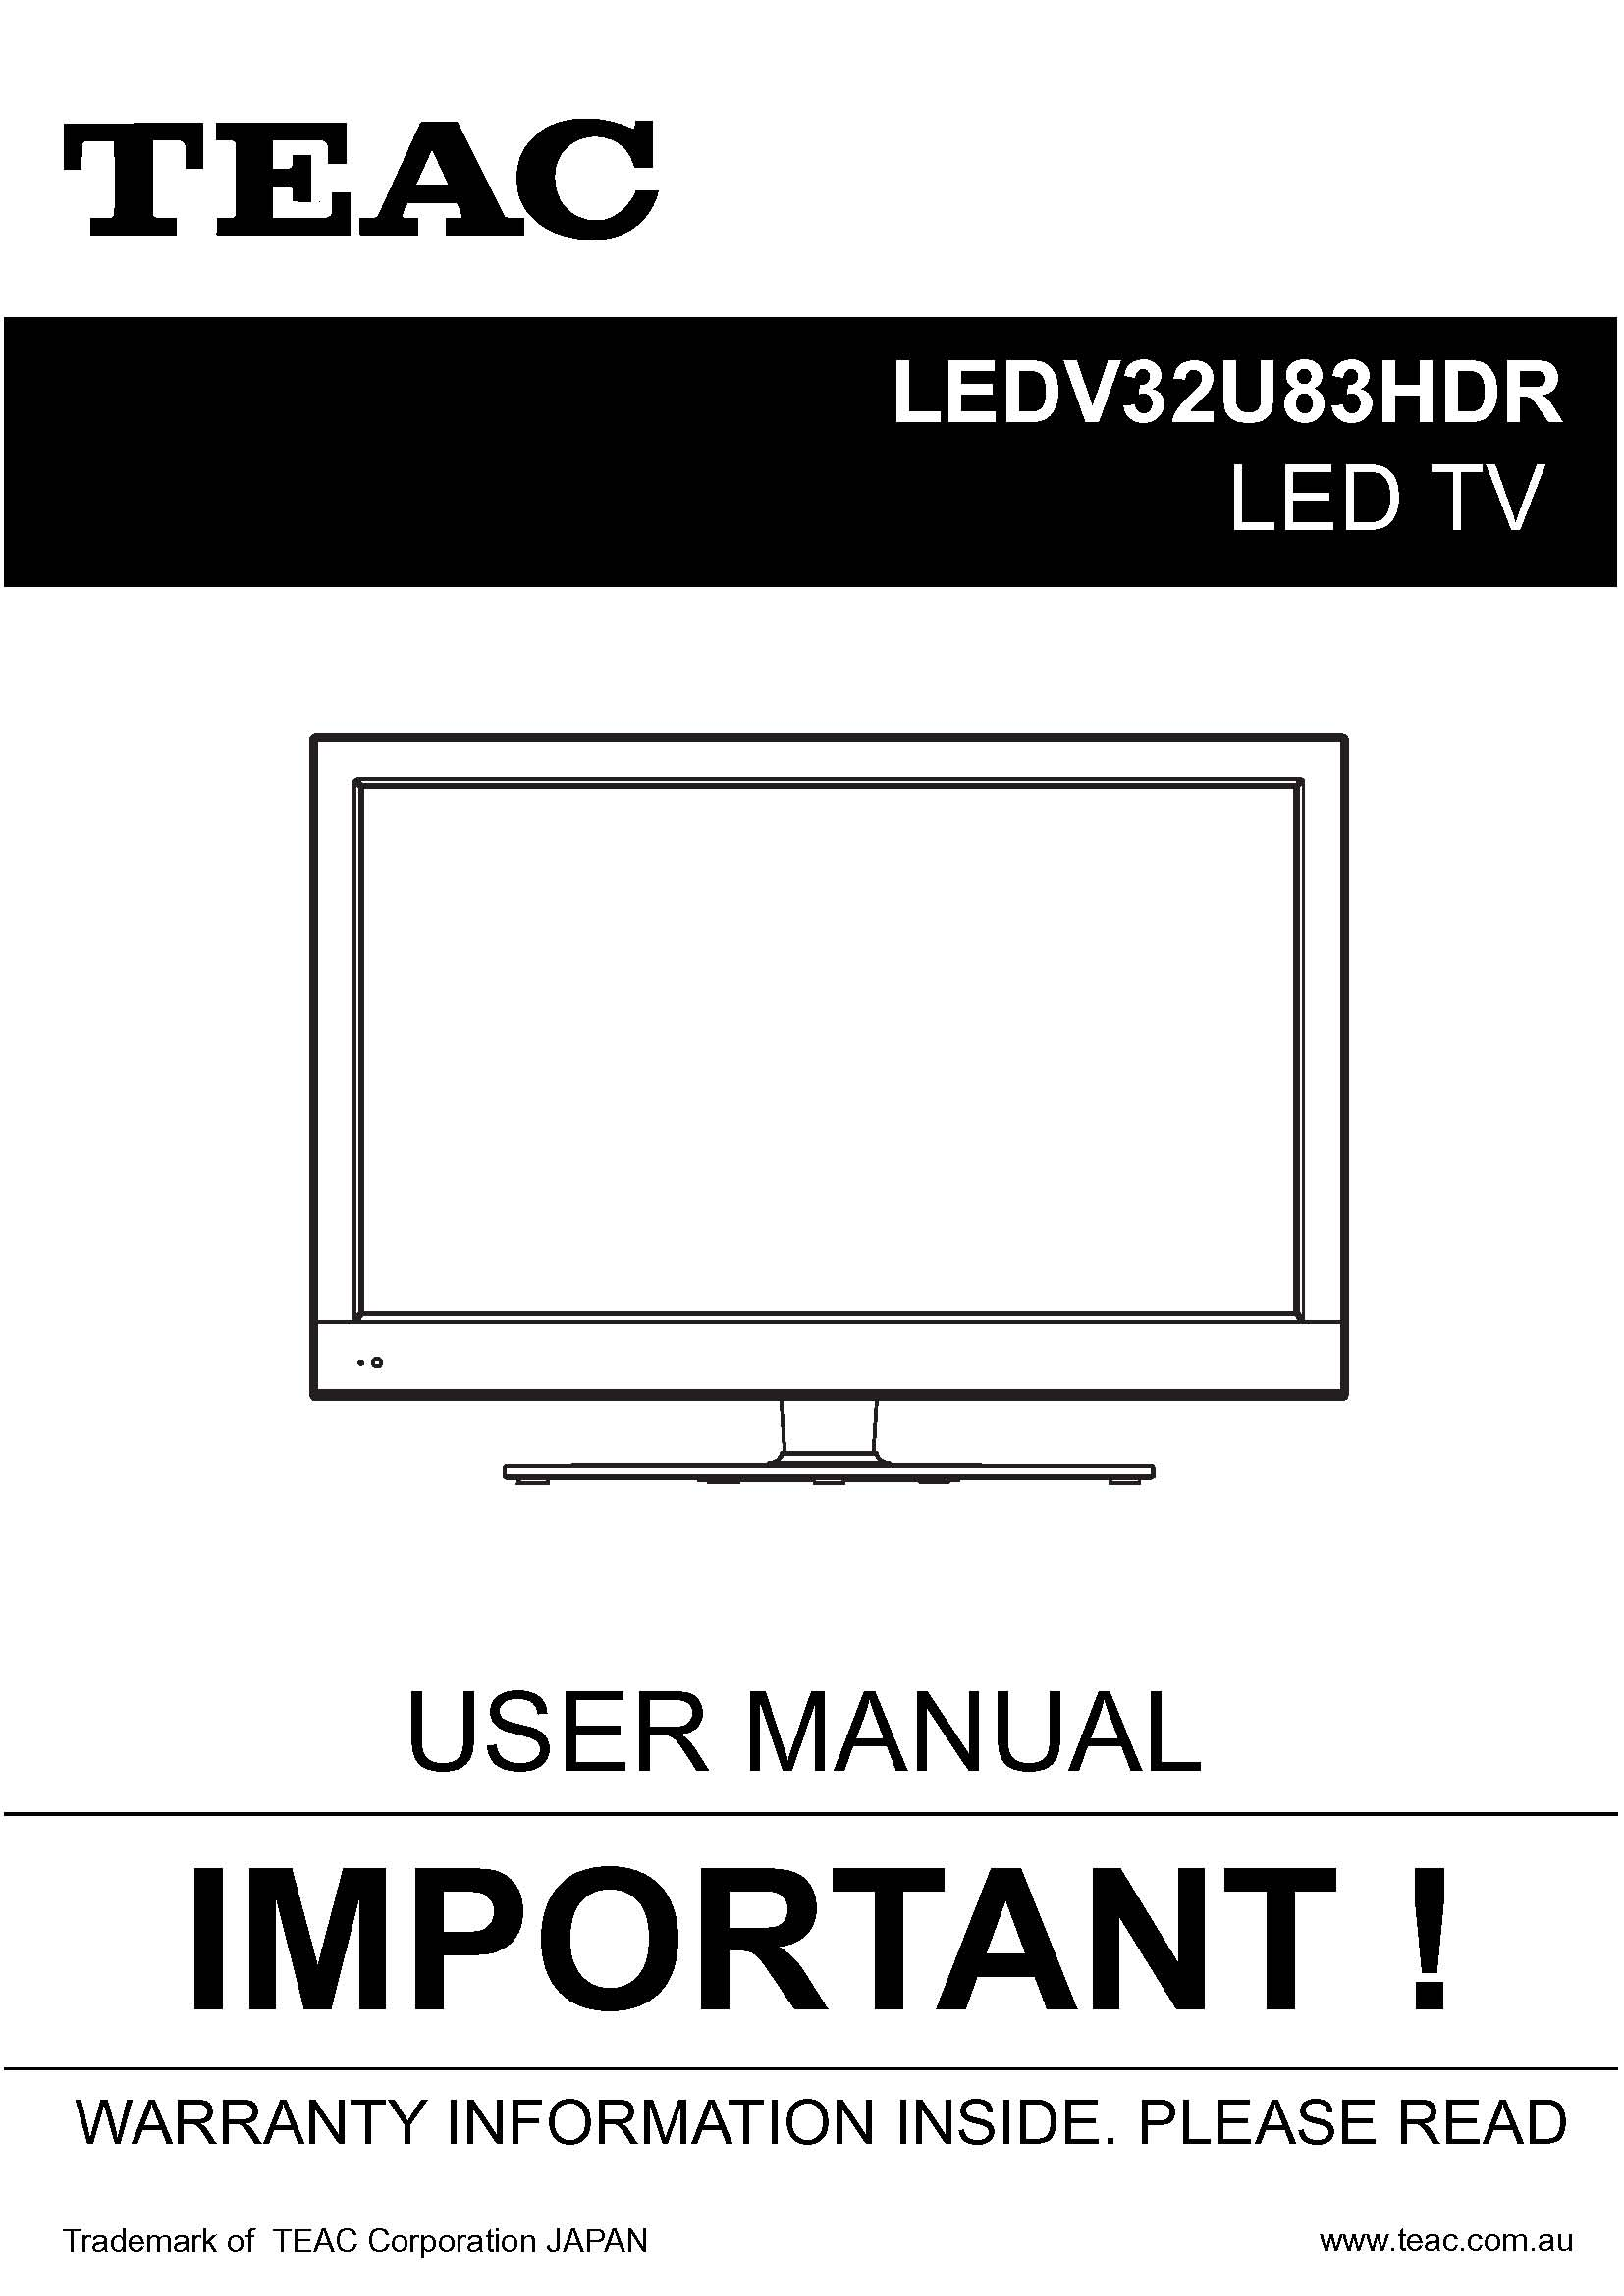 TEAC LEDV32U83HDR_User_Manual